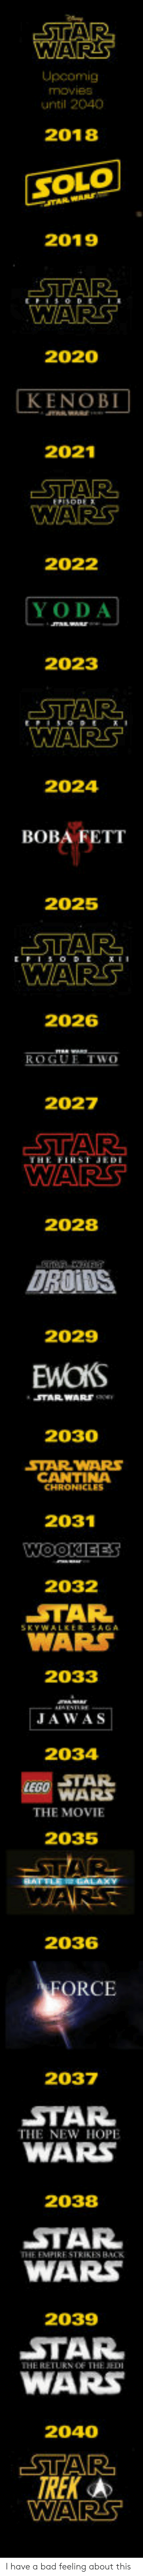 Bad, Star Wars, and Yoda: WARS  movie3  until 2040  2018  SOLO  2019  2020  KENOB  2021  2022  YODA  2023  2024  BOBA FETT  2025  2026  We  2027  2028  DROIDS  2029  TARWARS  2030  STAR WARS  CANTINA  2031  2032  WAR  2033  JAWAS  2034  STAR  WARS  THE MOVIE  2035  2036  ORCE  2037  STAR  WARS  THE NEW HOPE  2038  STAR  WARS  2039  STAR  WARS  2040  WARS I have a bad feeling about this